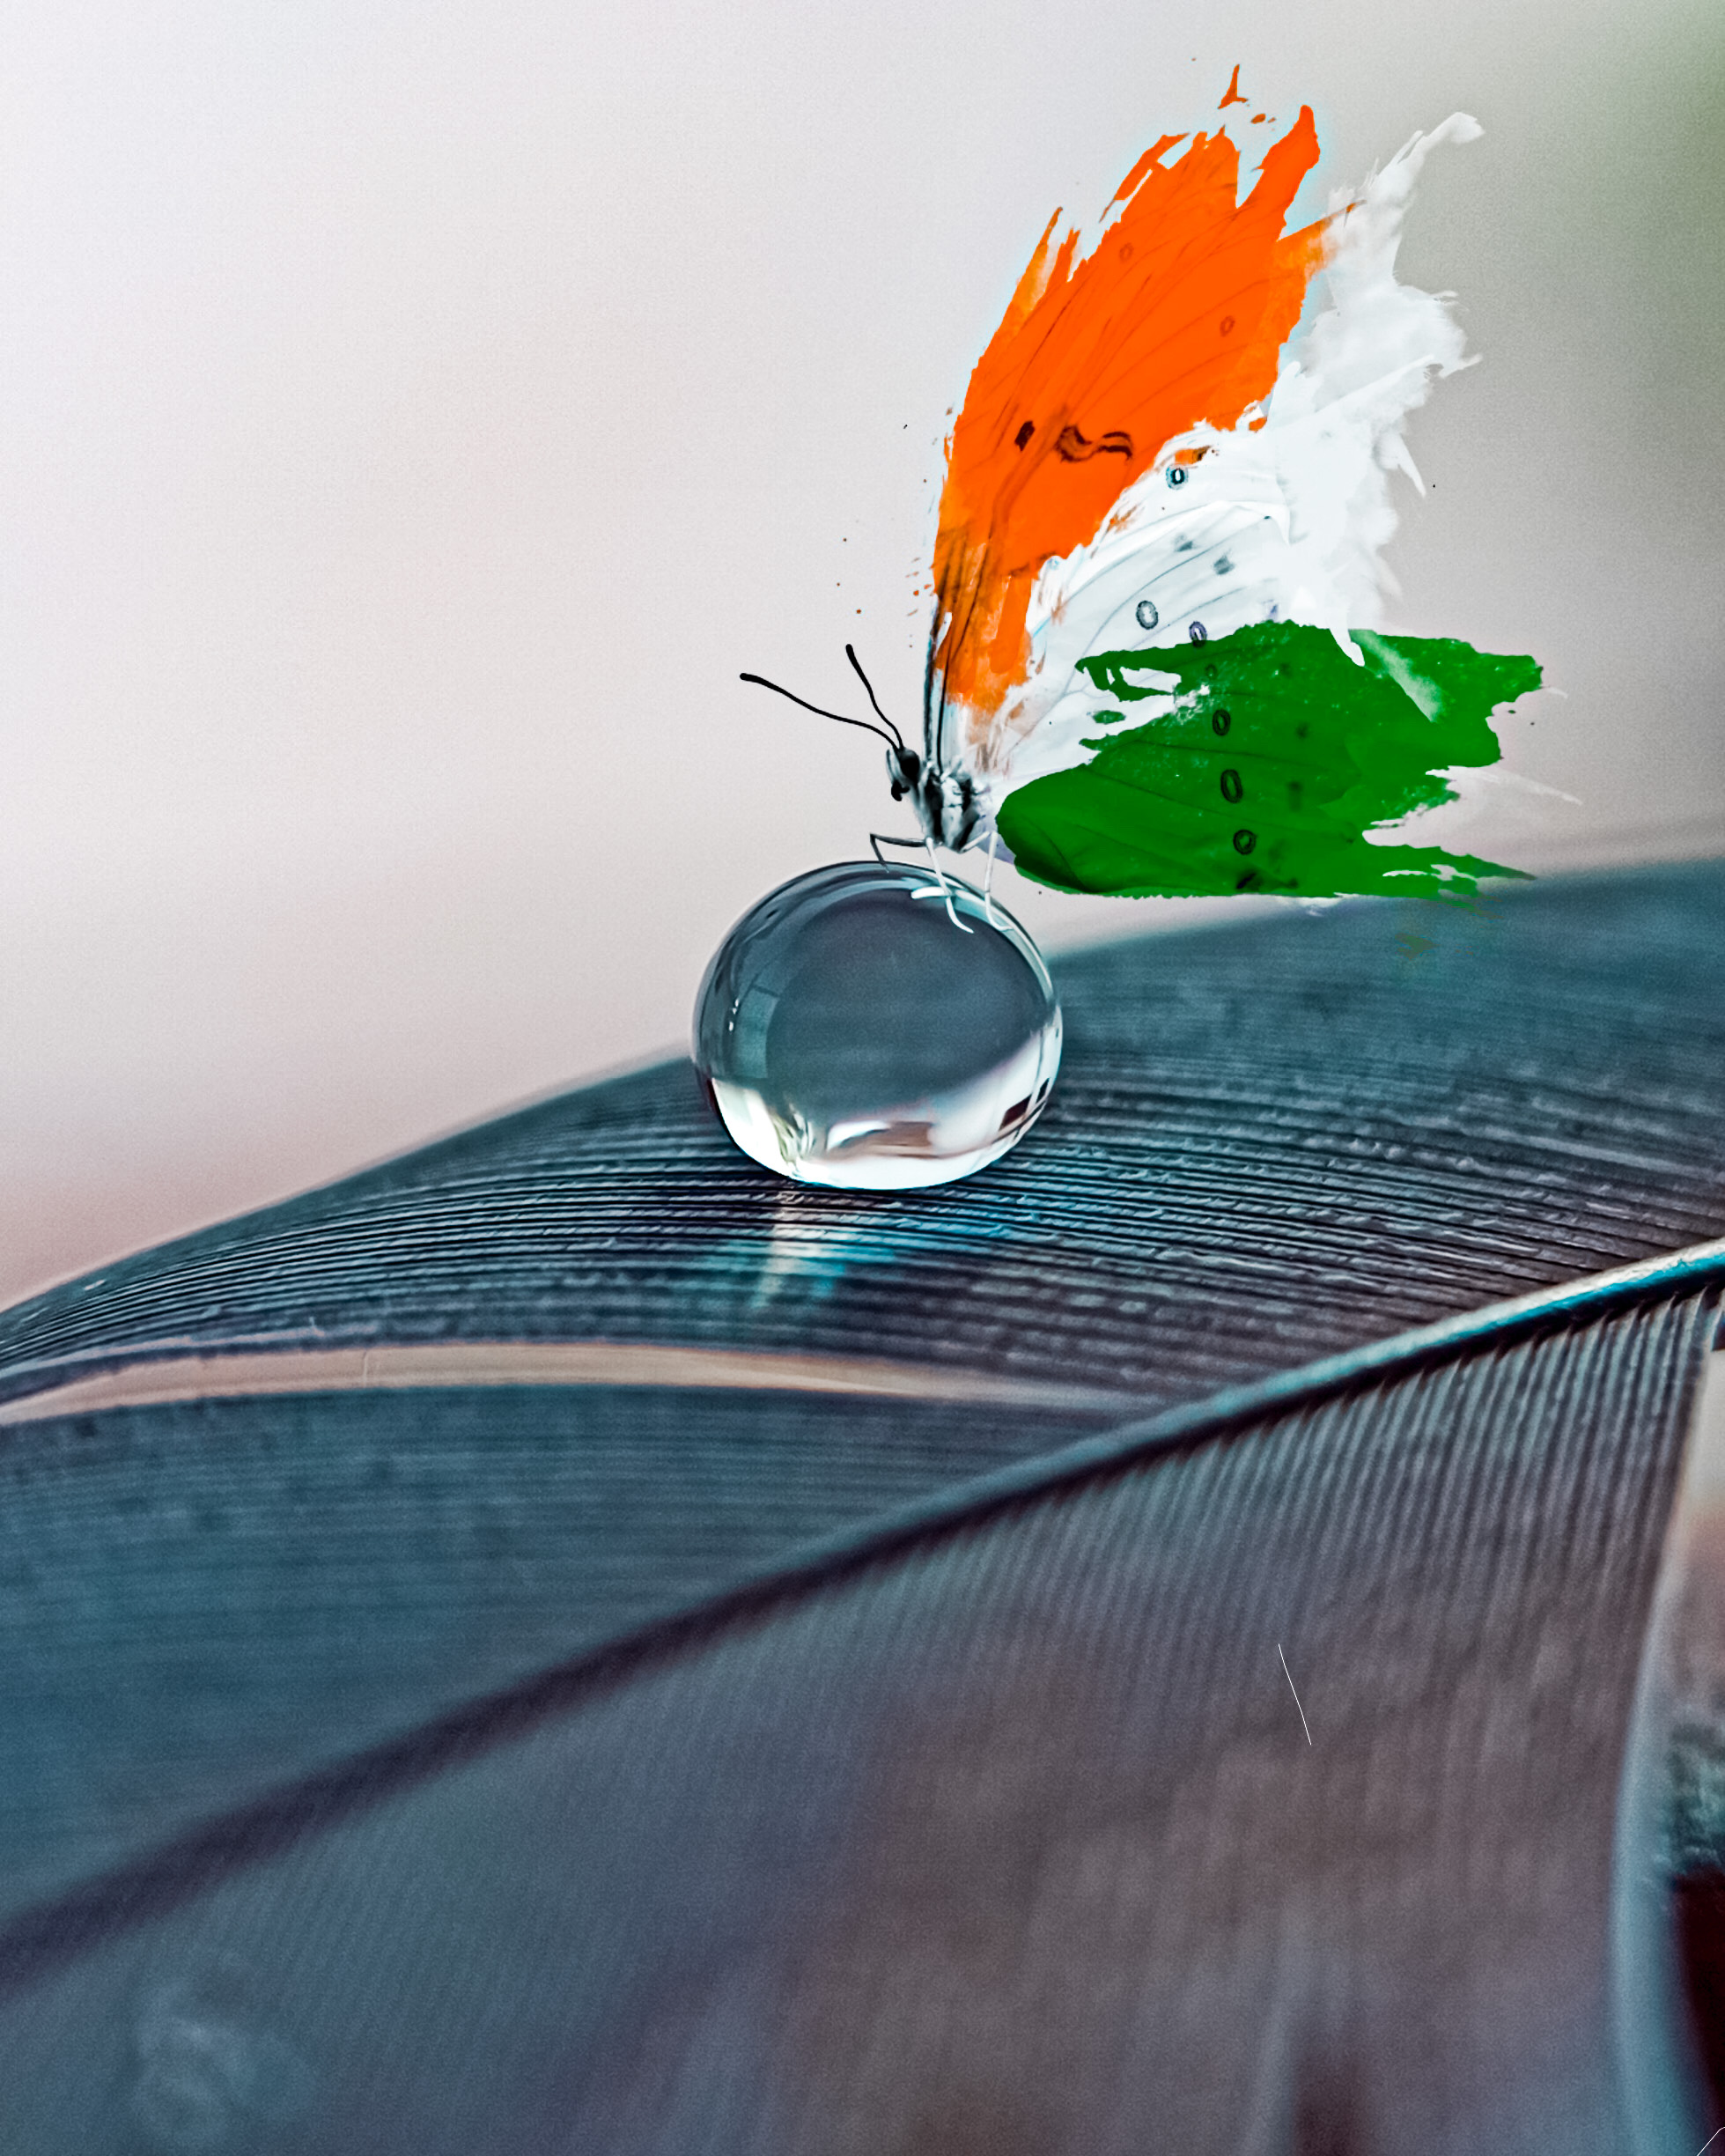 water drop on leaf and mosquito with flag color wings on it